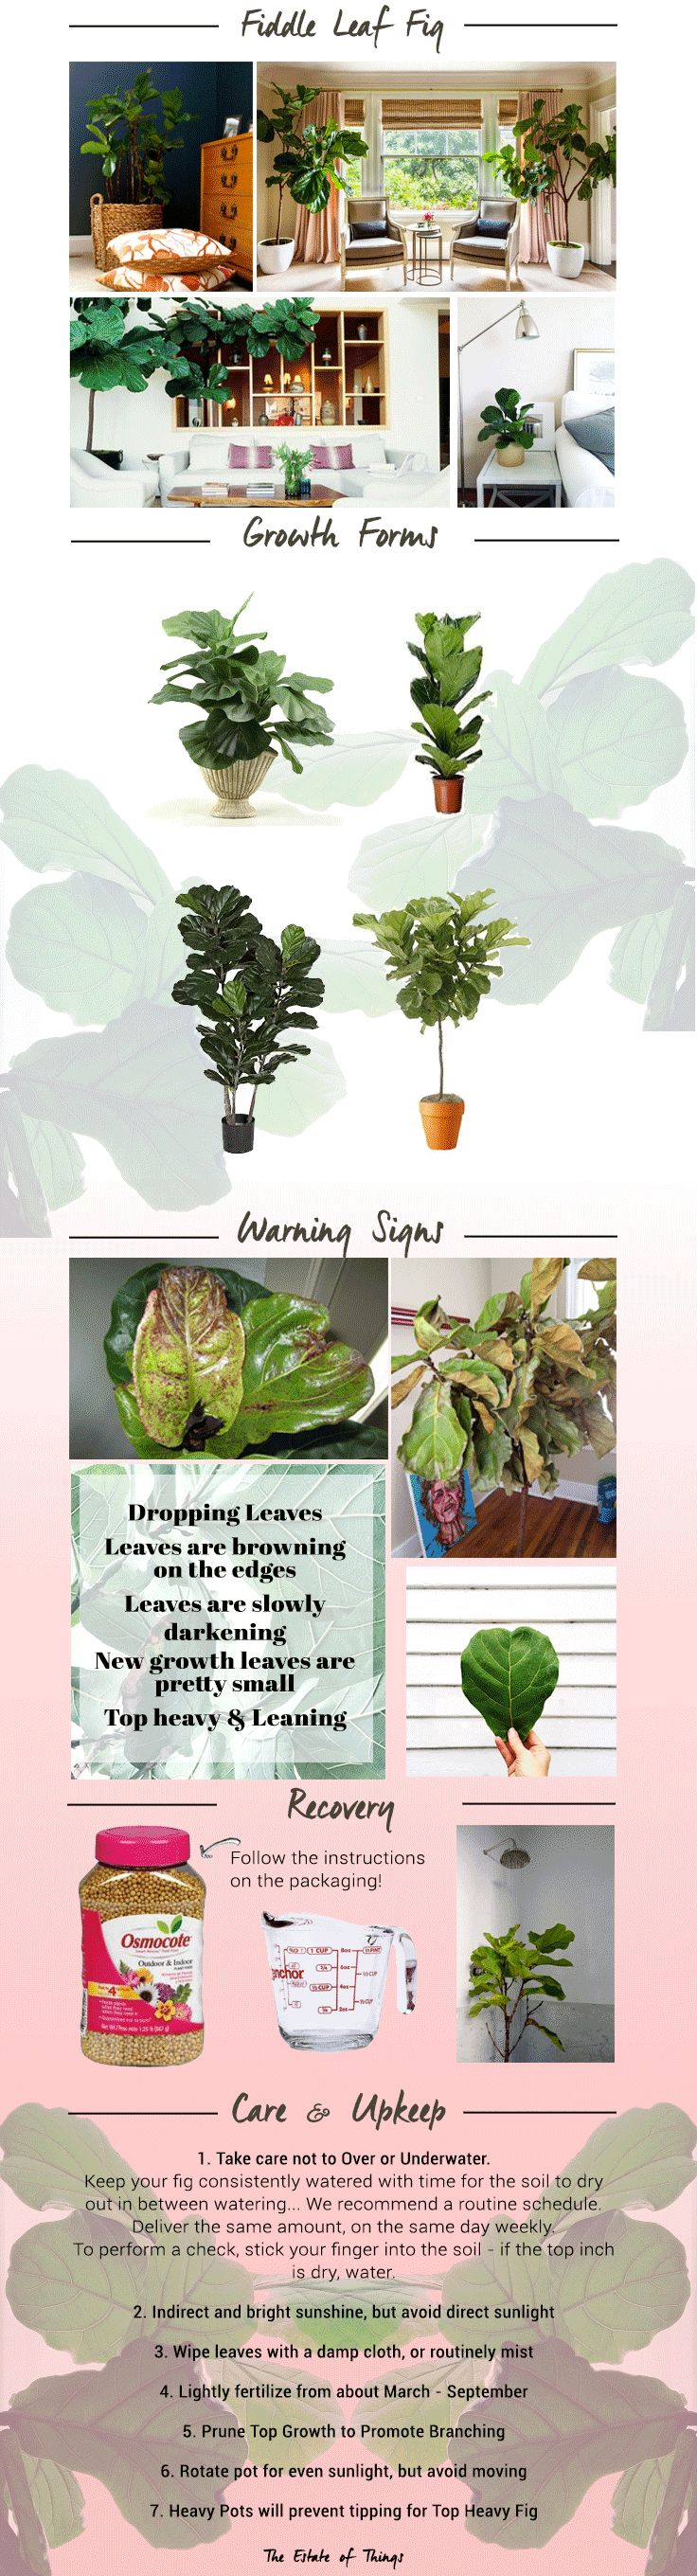 Fiddle-Leaf-Fig-Guide-by-the-Estate-of-Things